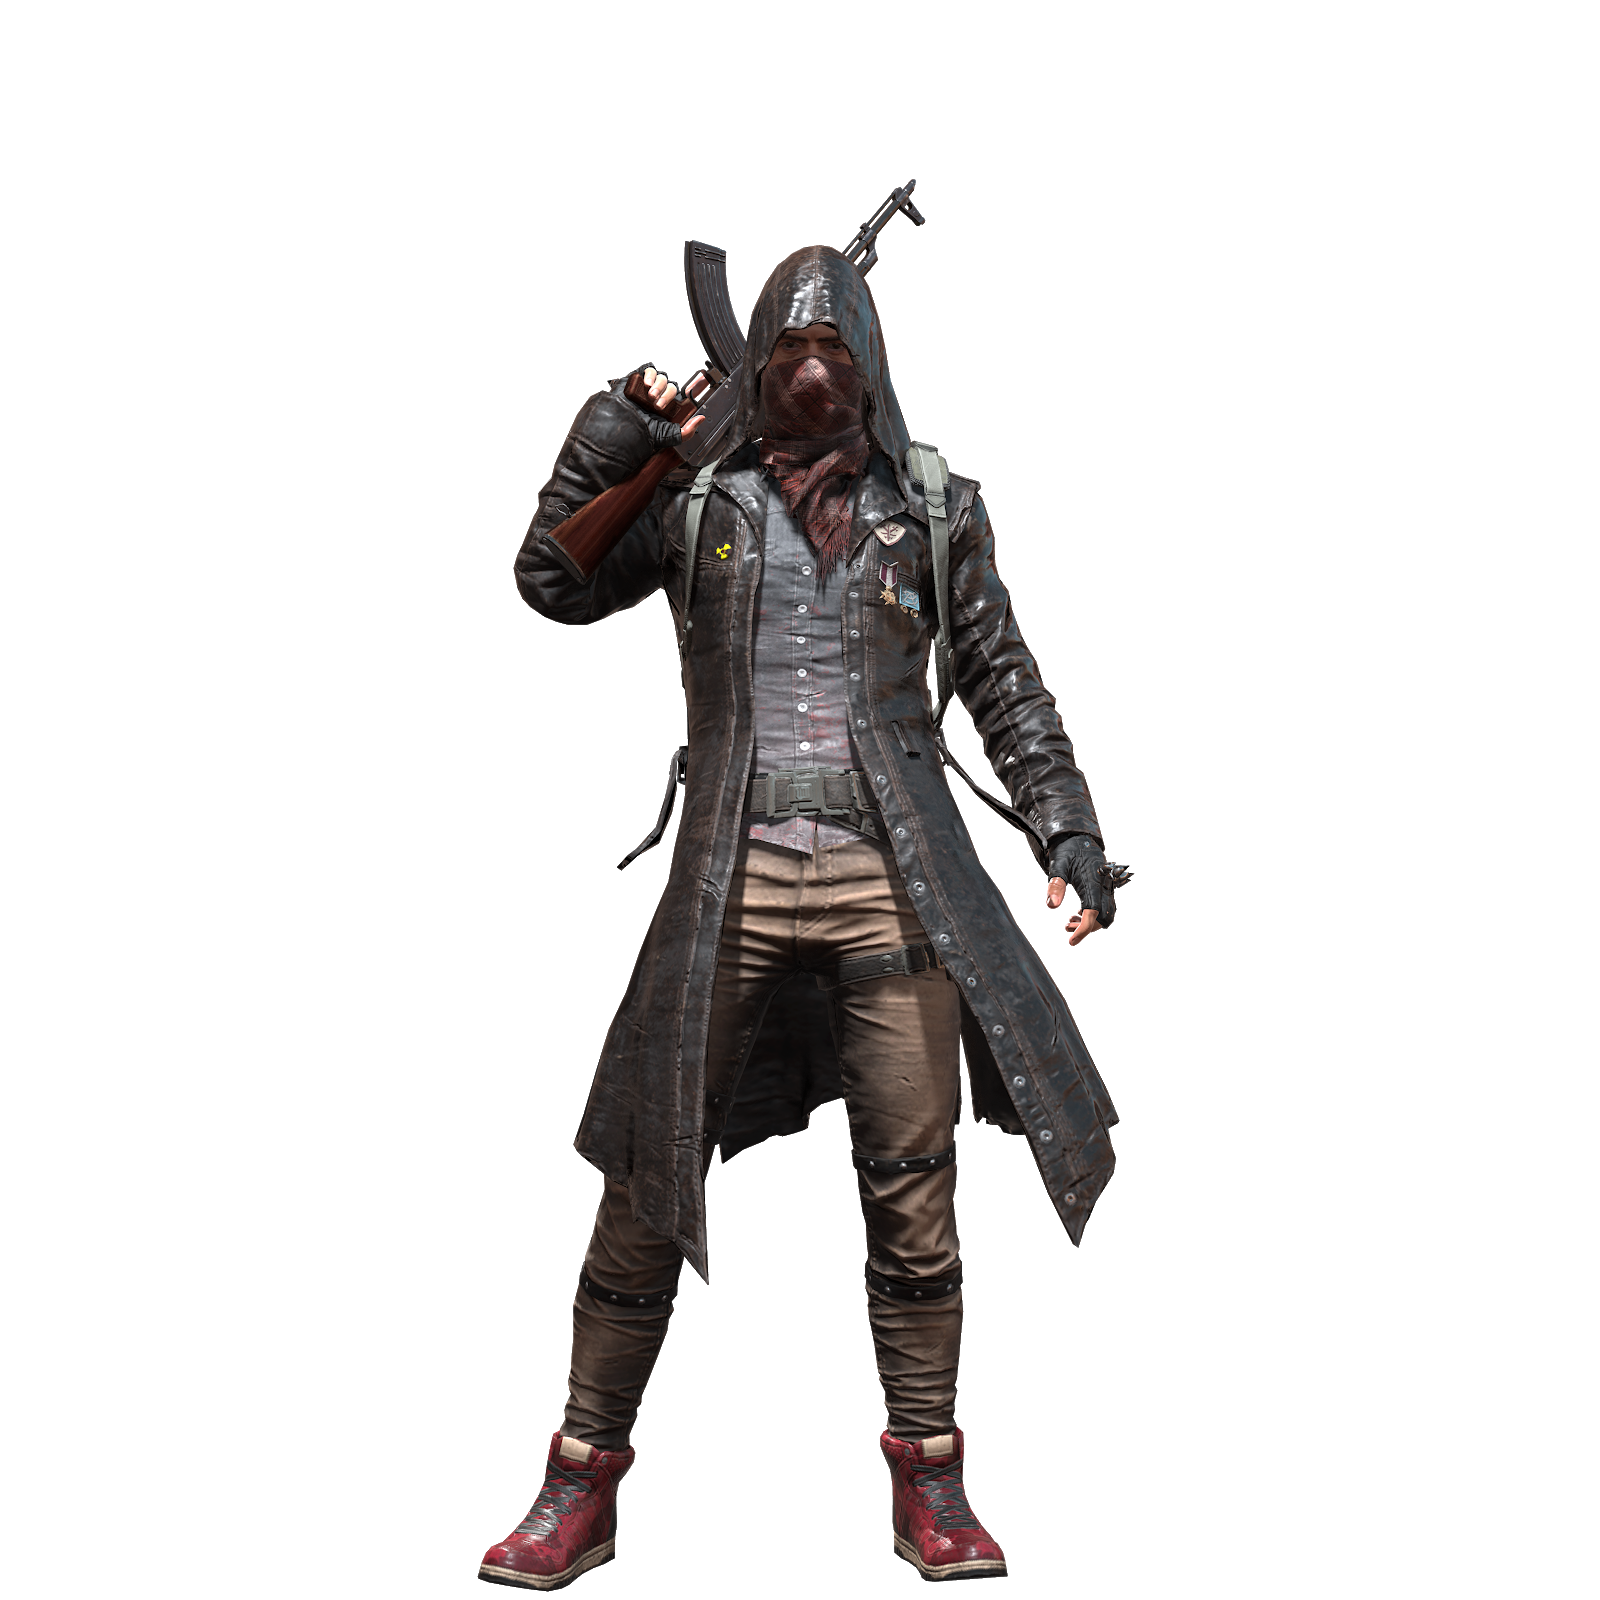 Playerunknown set pioneer shirt. Pubg character png picture freeuse stock